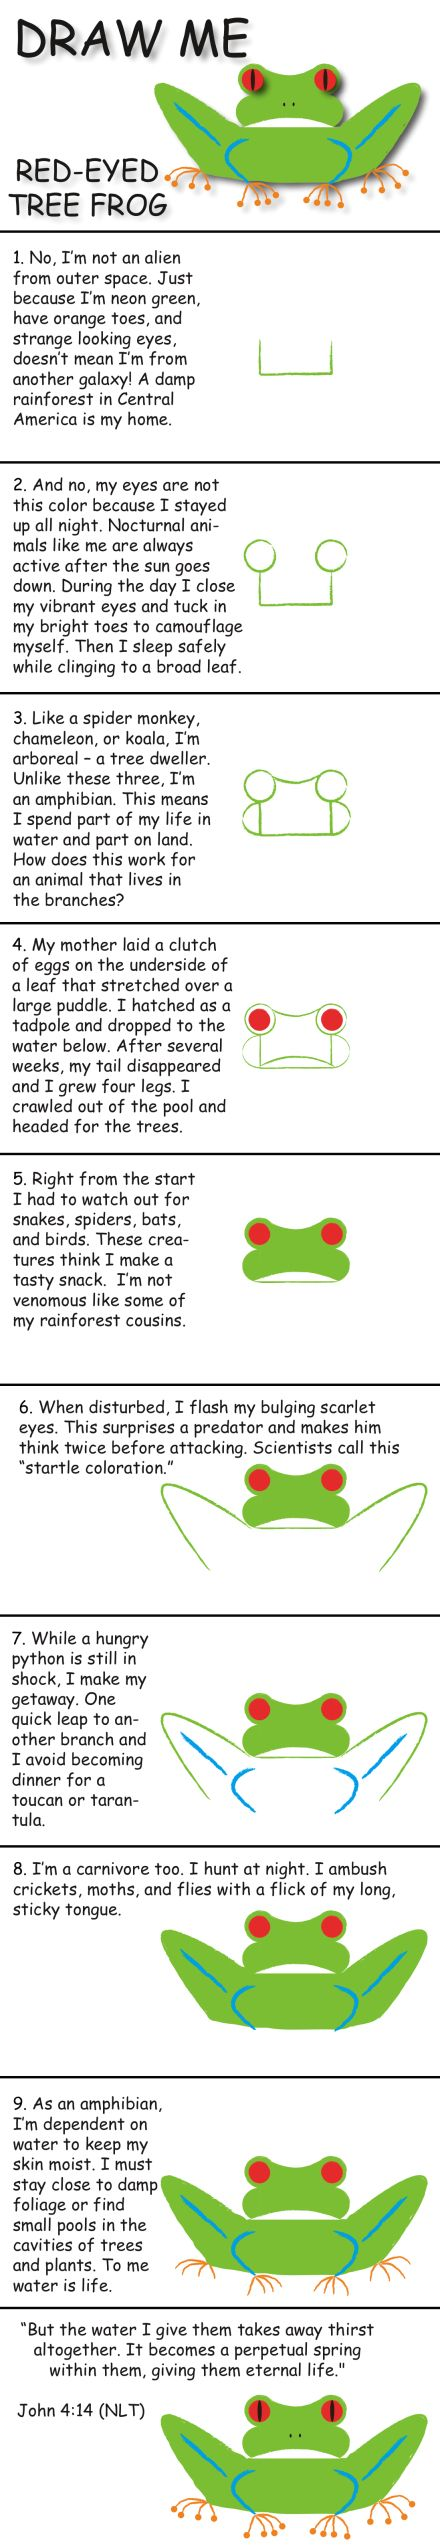 Draw a red-eyed tree frog in 10 easy steps and learn fun ...